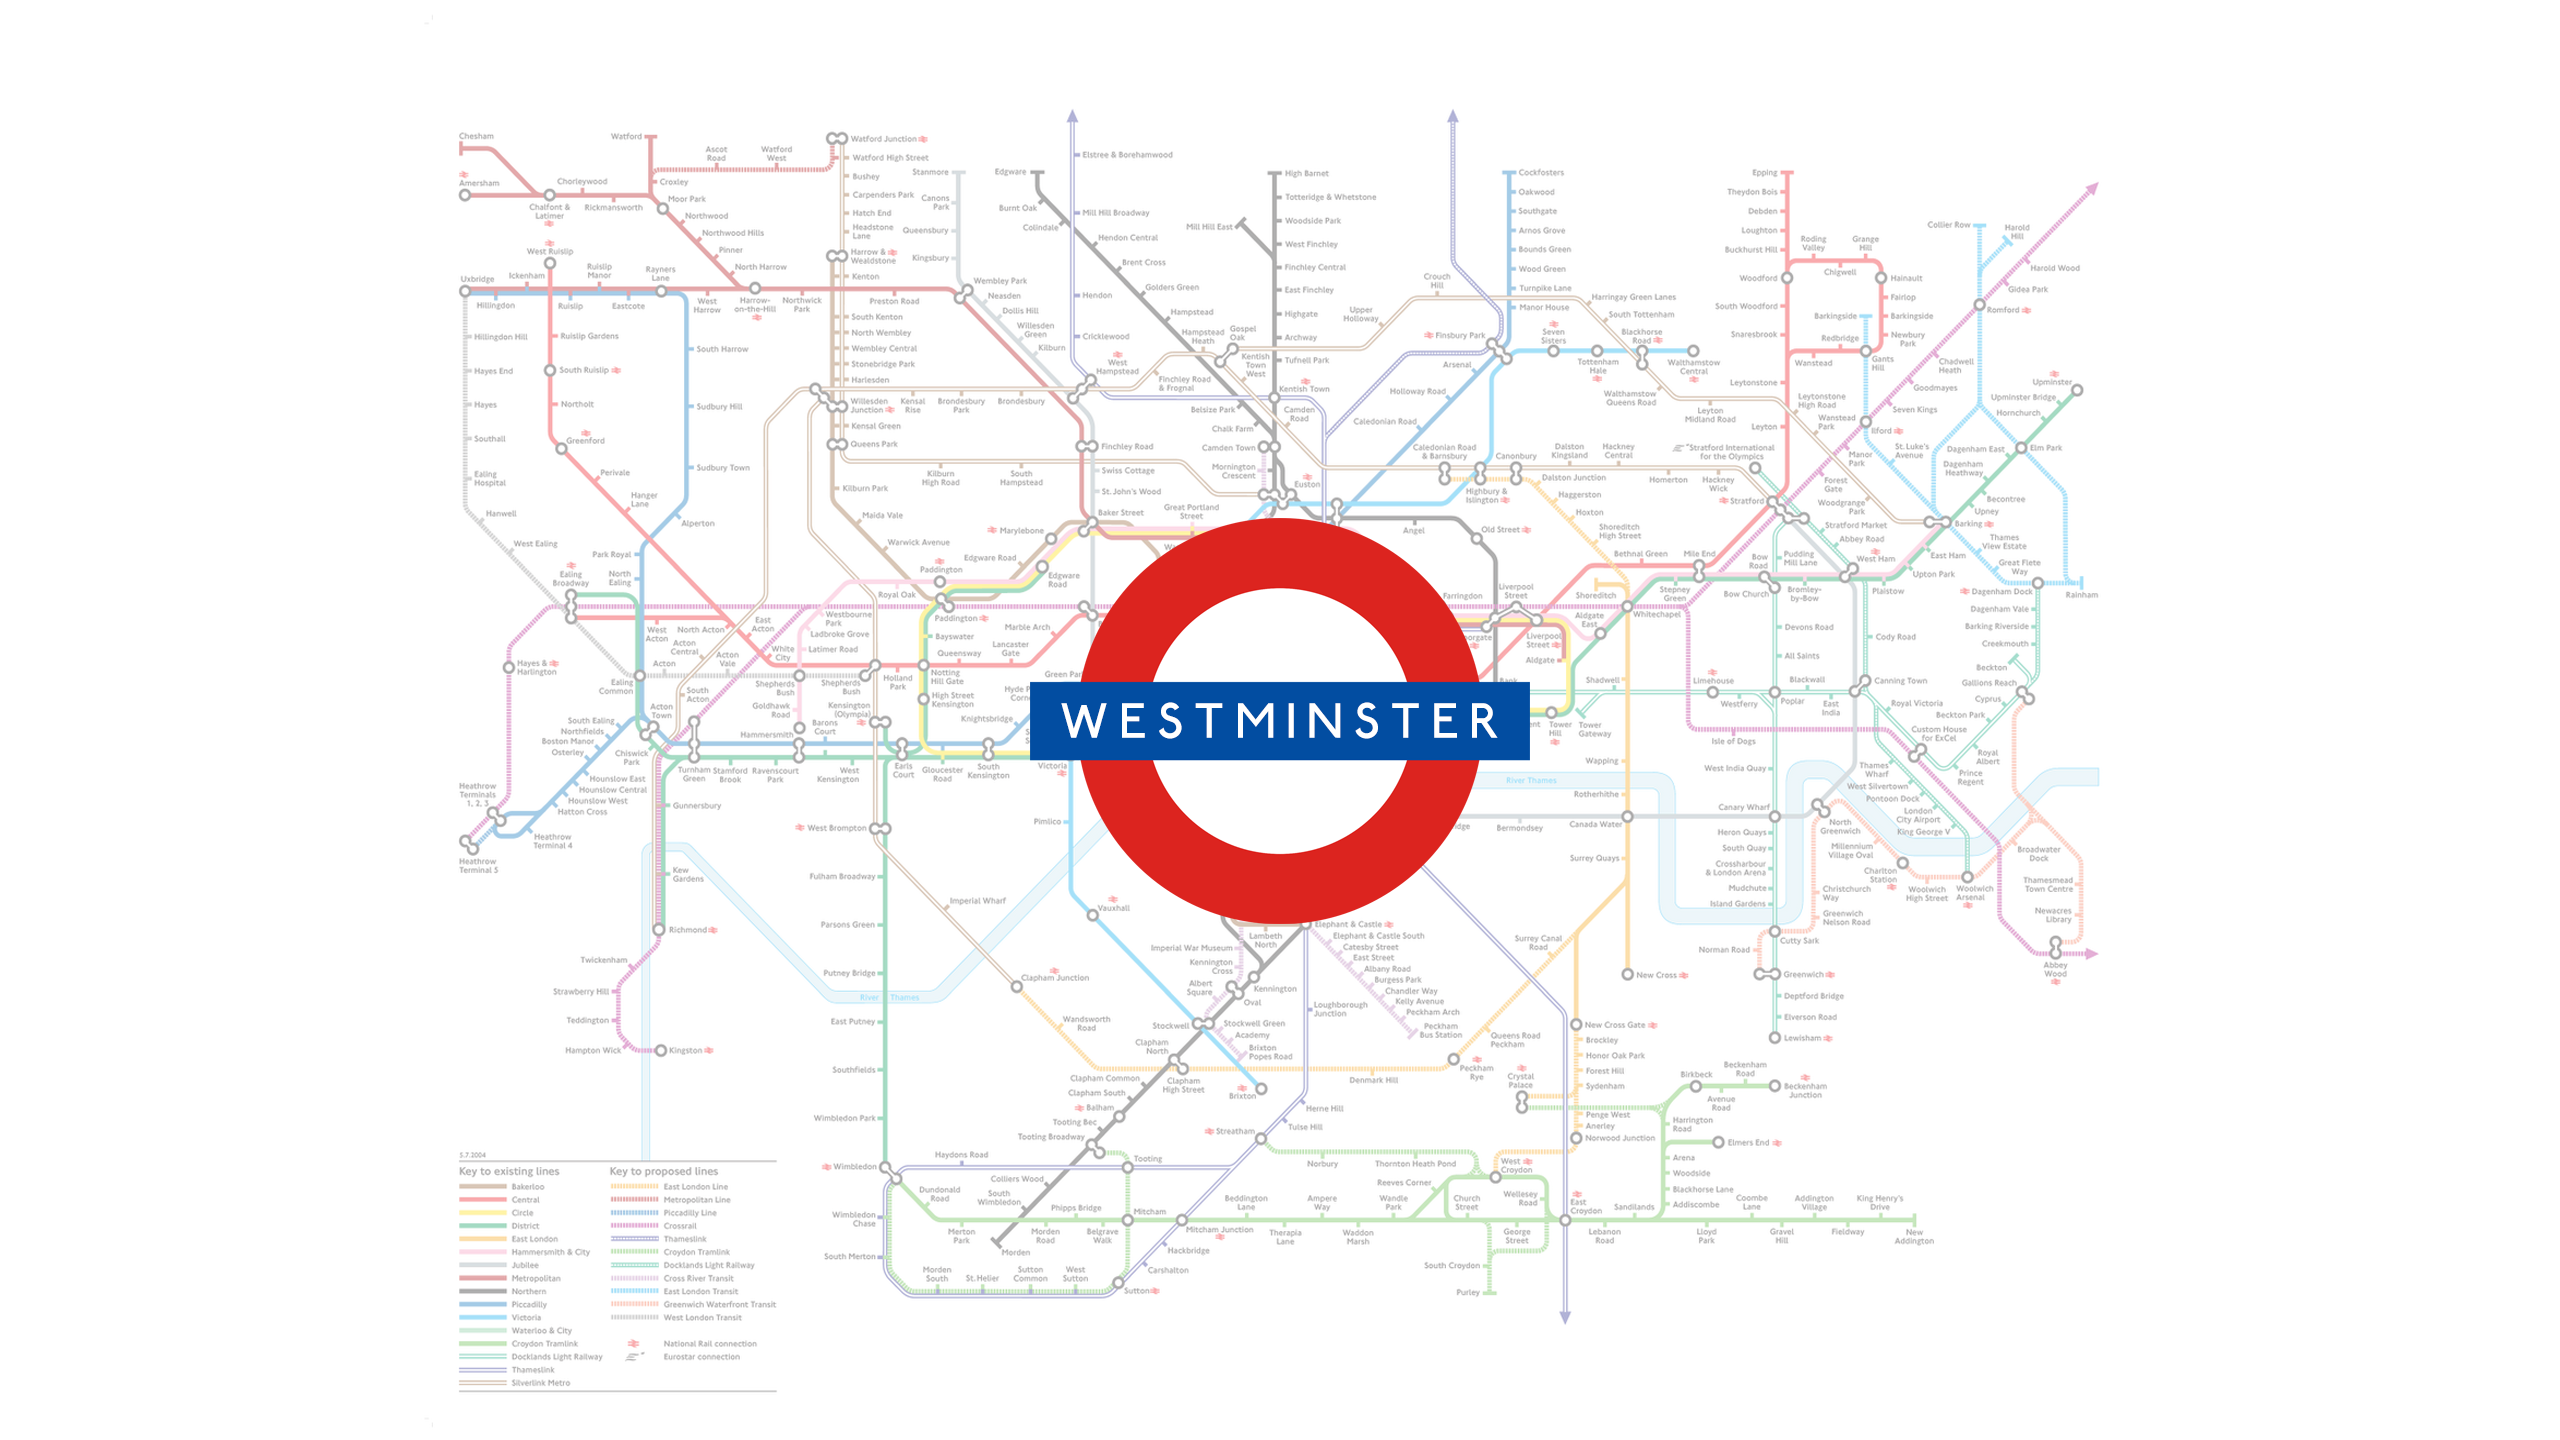 Westminster (Map)